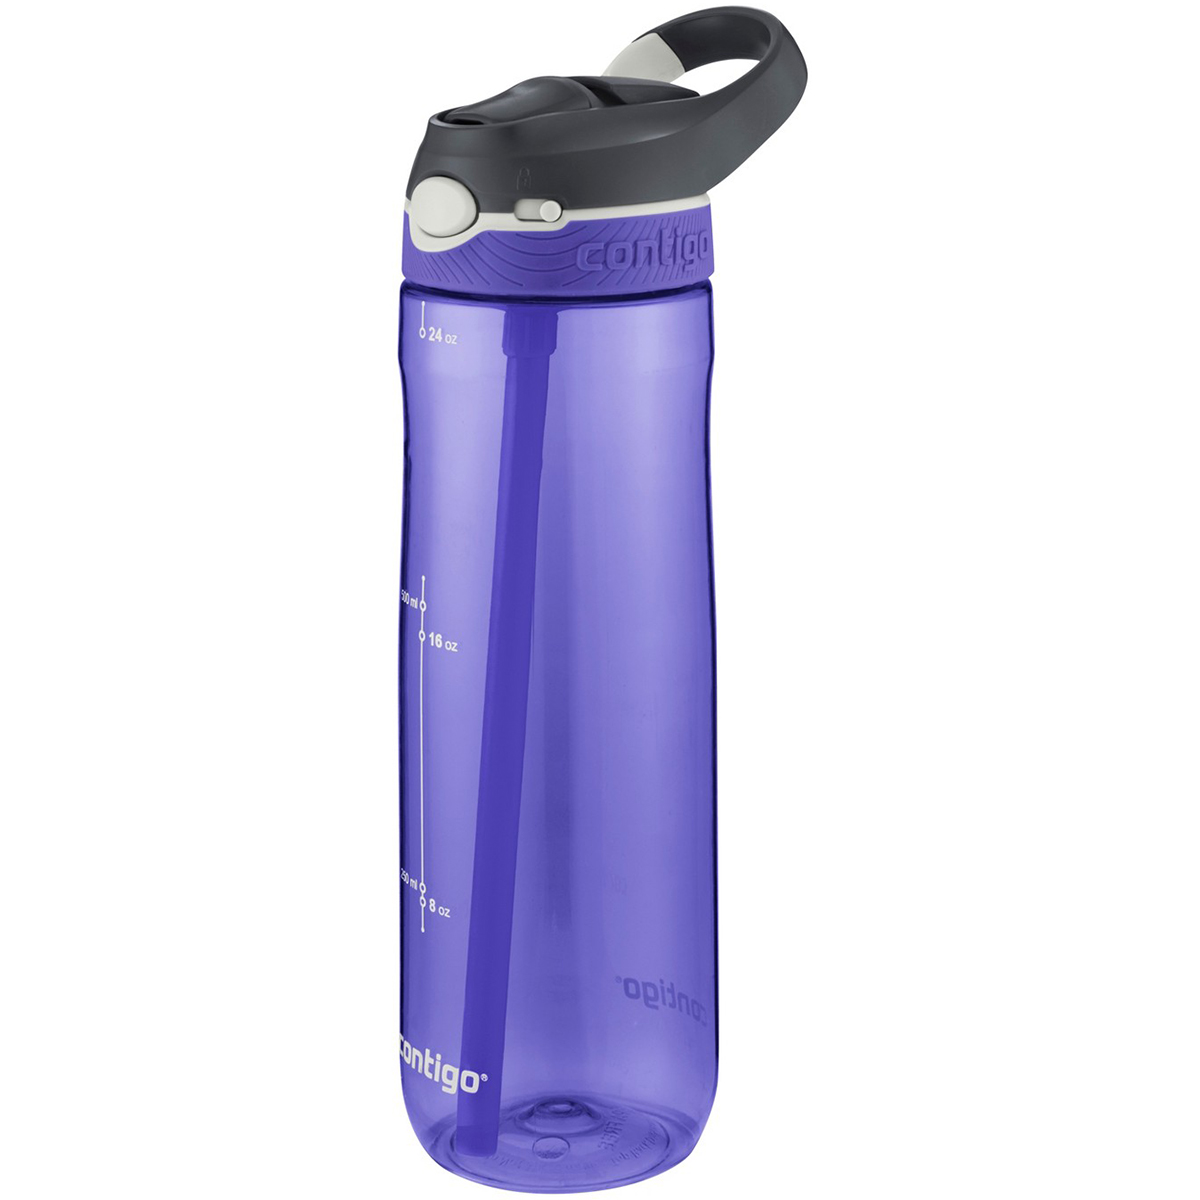 Contigo-24-oz-Ashland-Autospout-Water-Bottle miniature 7